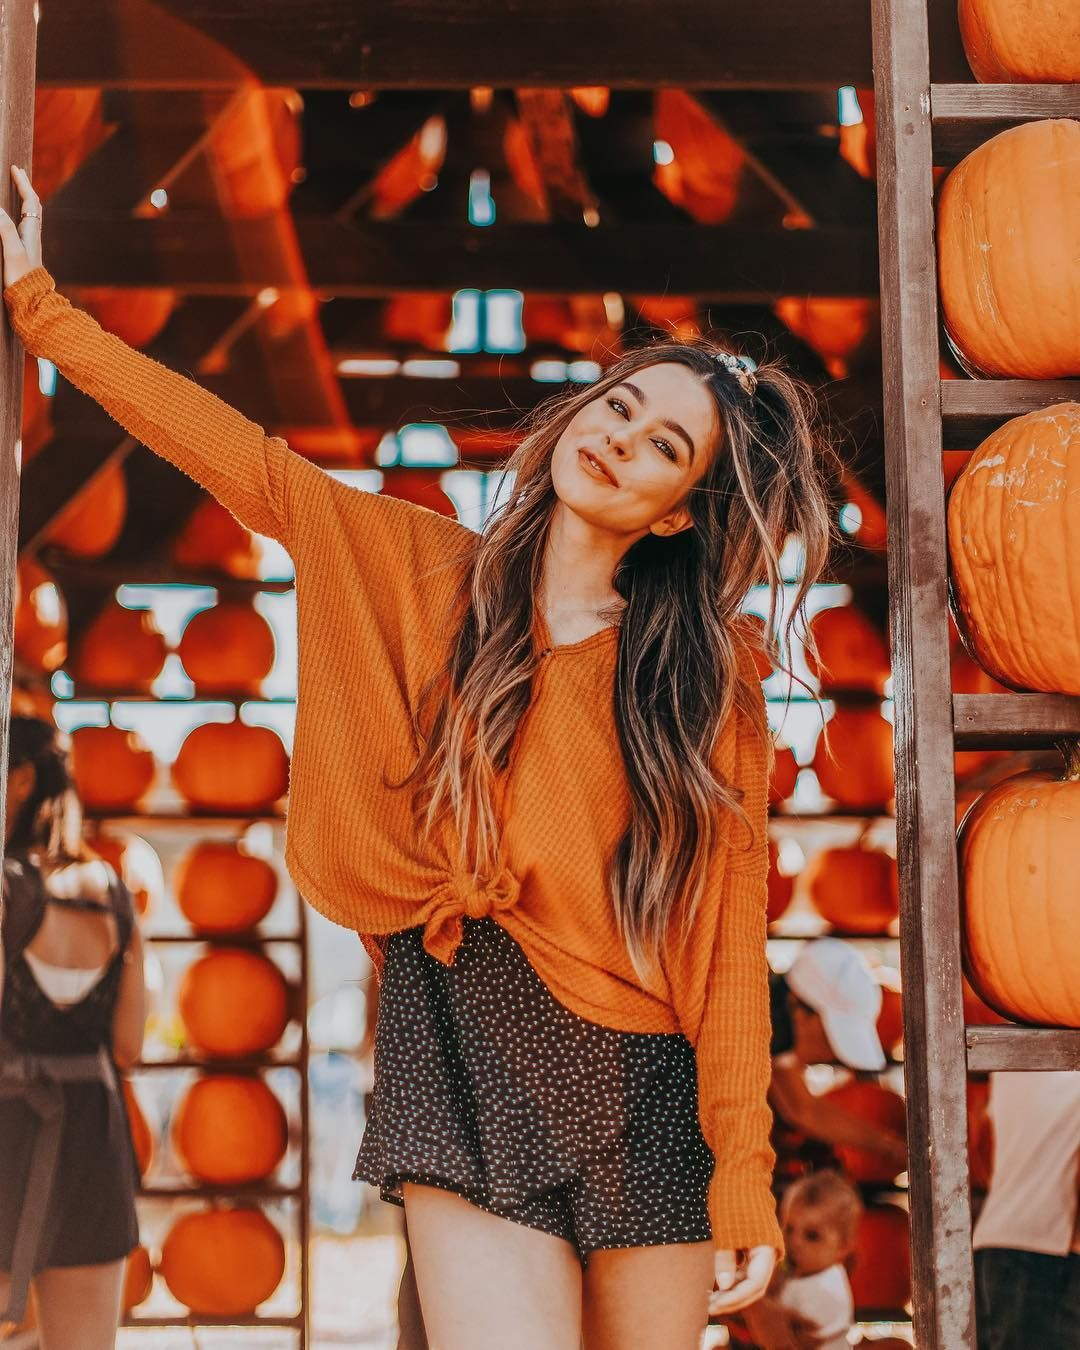 """Sierra Furtado on Instagram: """"Another pumpkin patch pic shocker! Who's ready for Christmas now????????♀️ Keeping my summer glow tho with @garnierusa new Glow Boost…"""" #pumpkinpatchoutfitwomen"""